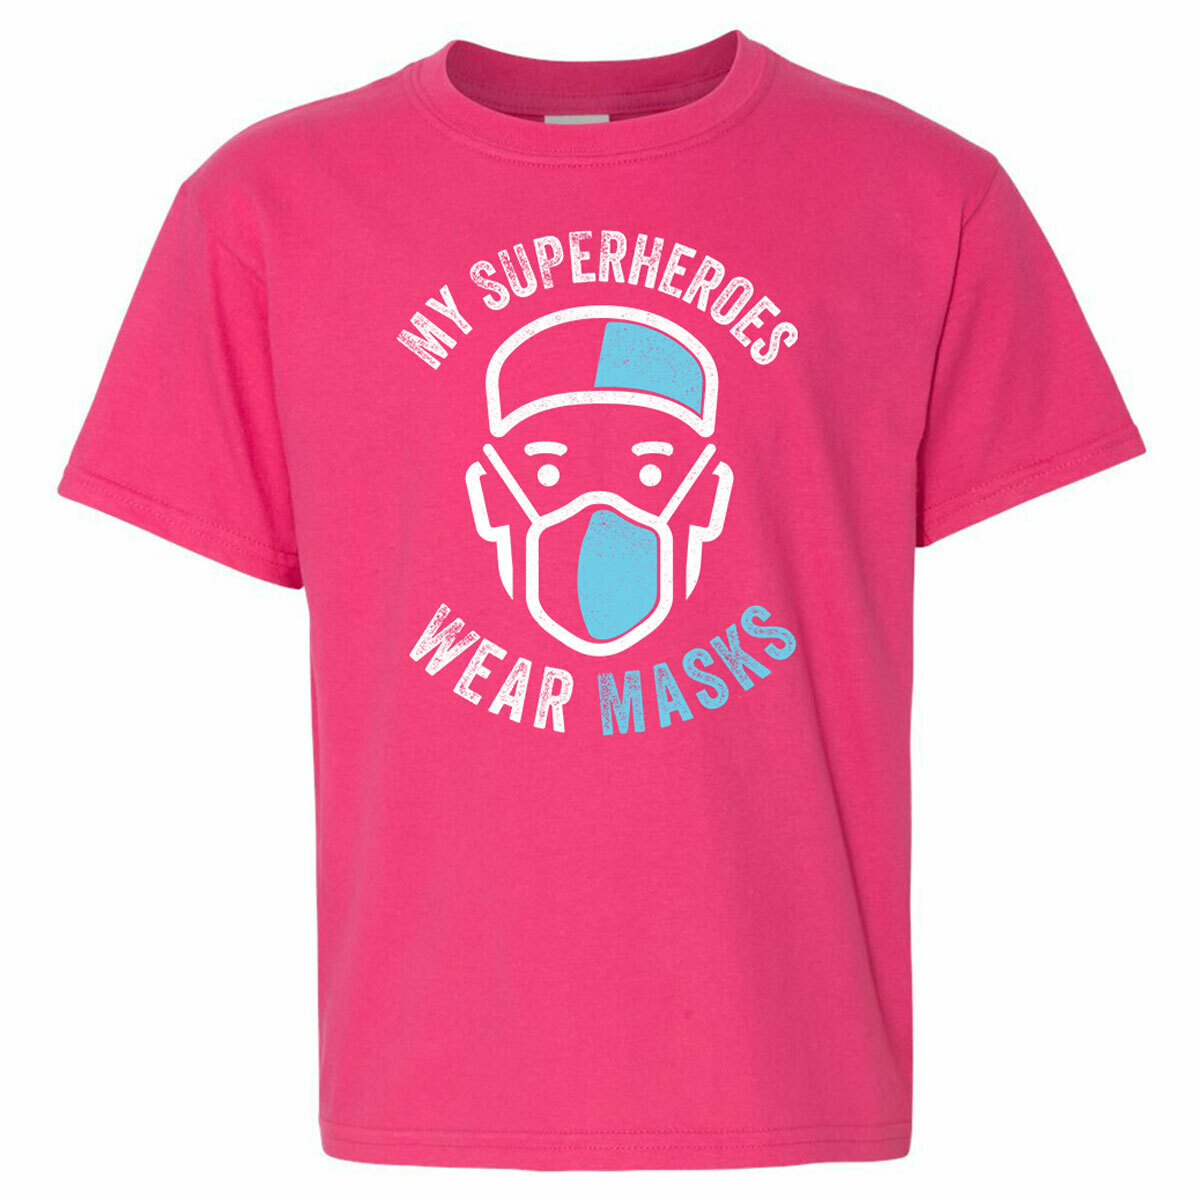 Youth Tee - My Superheroes Wear Masks - Pink